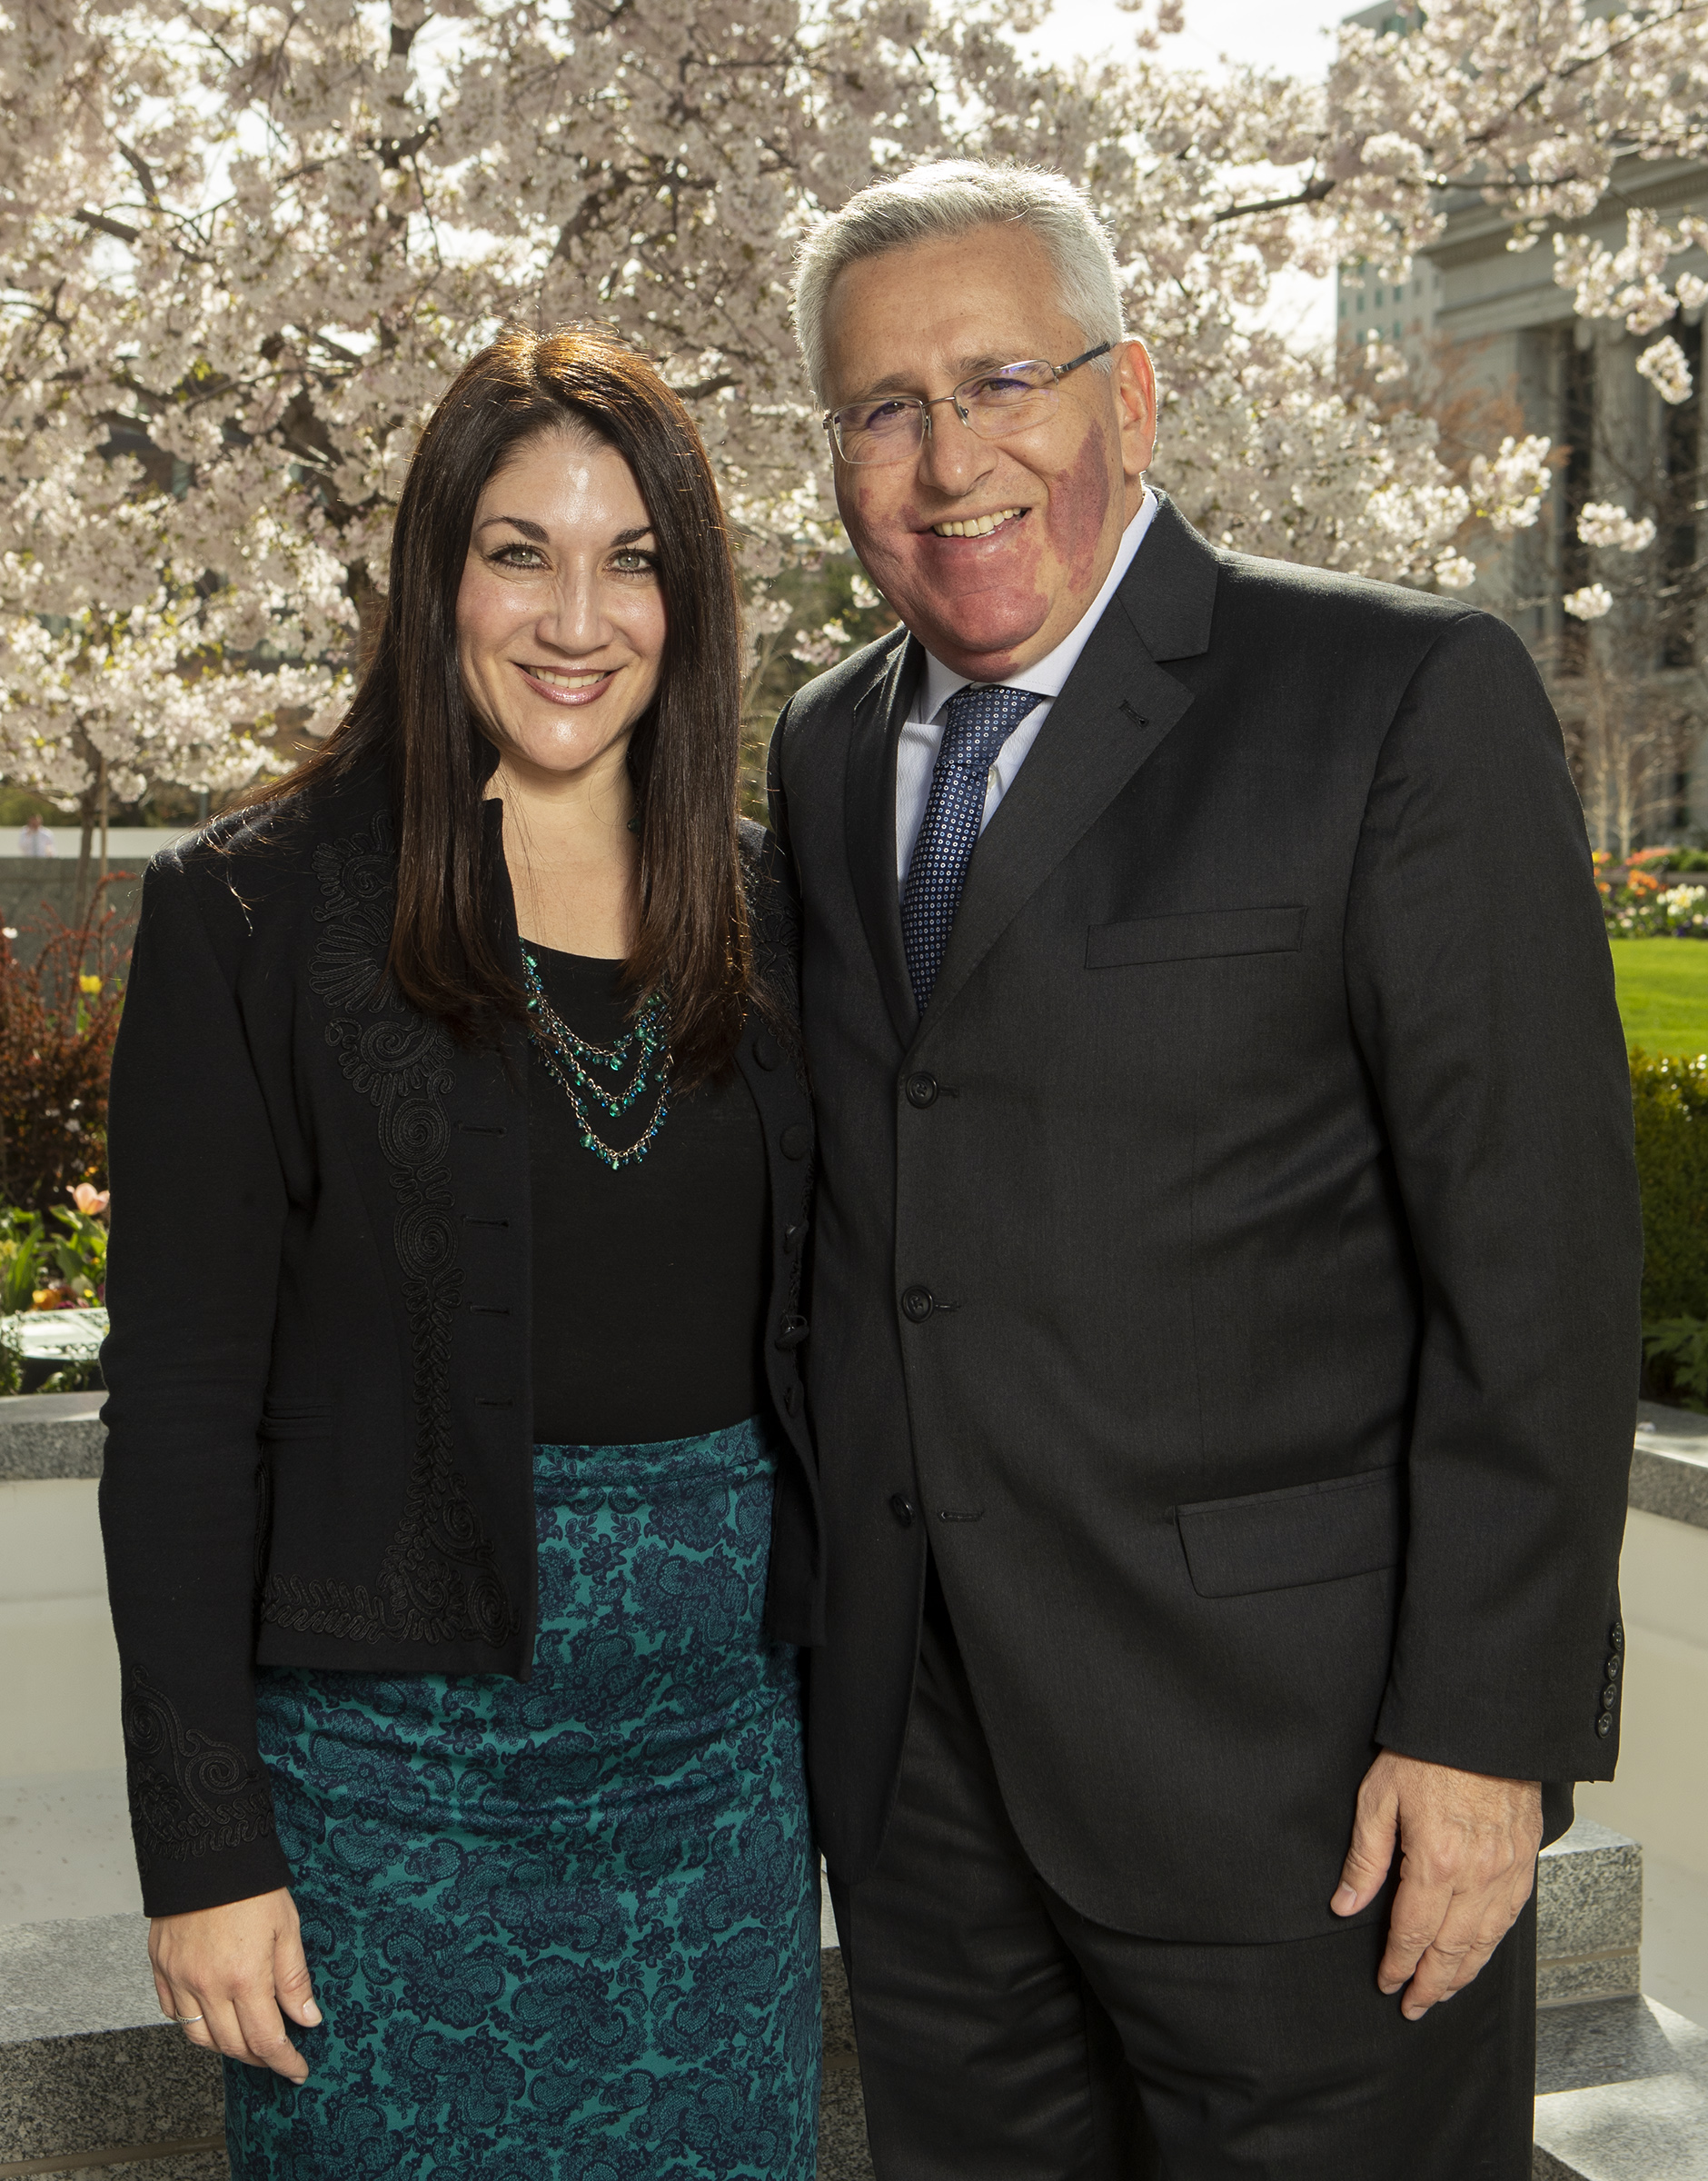 Sister Fabiana Bennett and Elder Ruben V. Alliaud pose for photos at the Church office building in Salt Lake City on Monday, April 8, 2019. Elder Alliaud was called to be a General Authority Seventy during the April 2019 general conference.